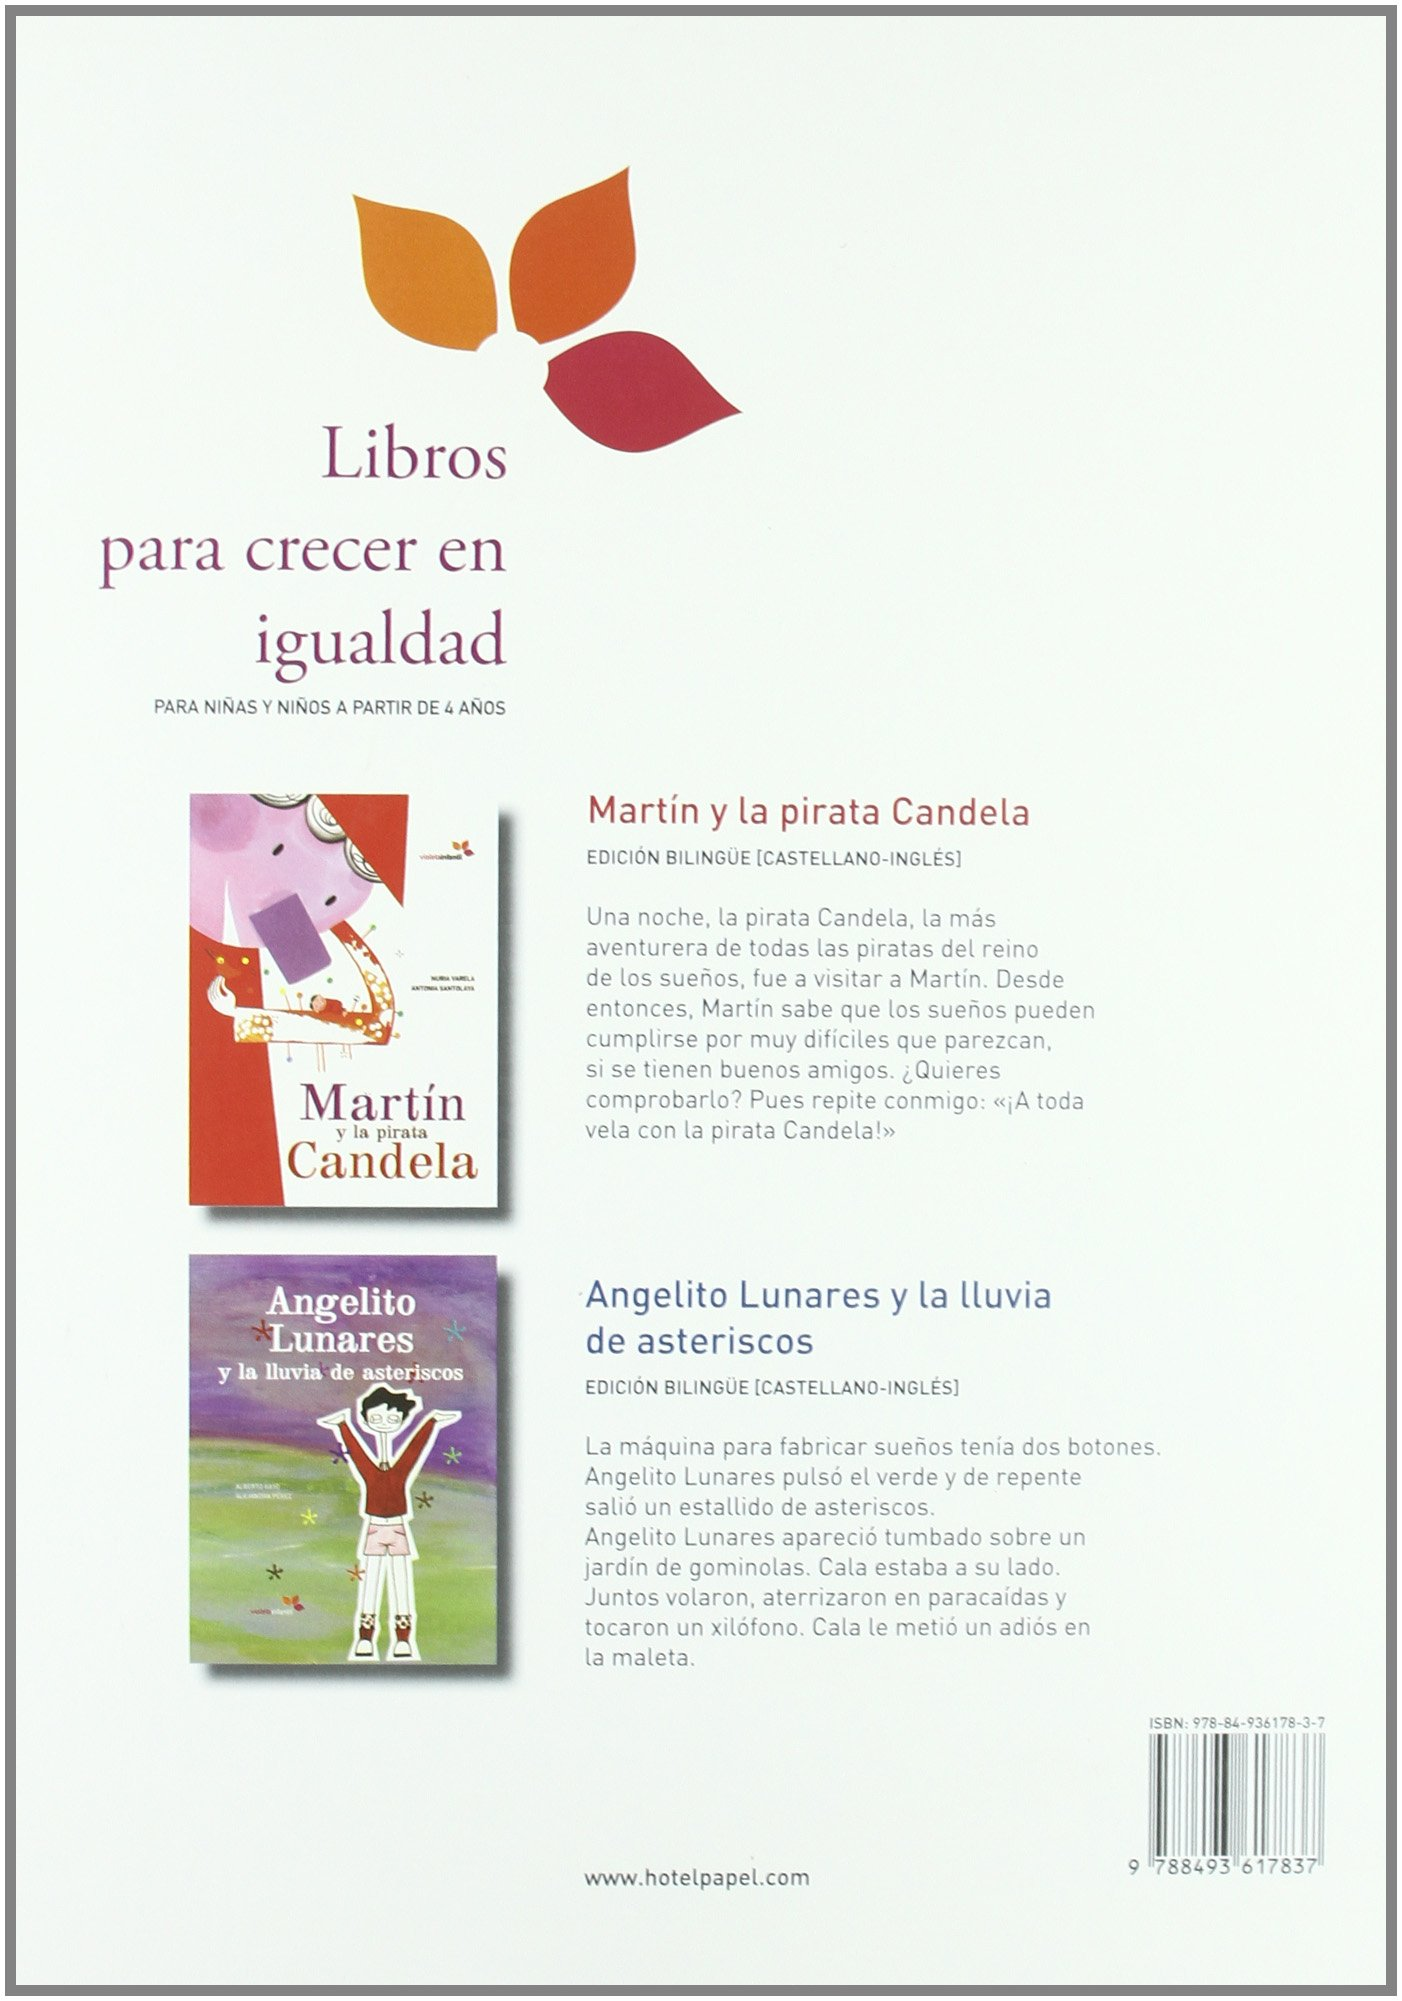 Martin Y Pirata Candela: VARELA(617837): 9788493617837: Amazon.com: Books